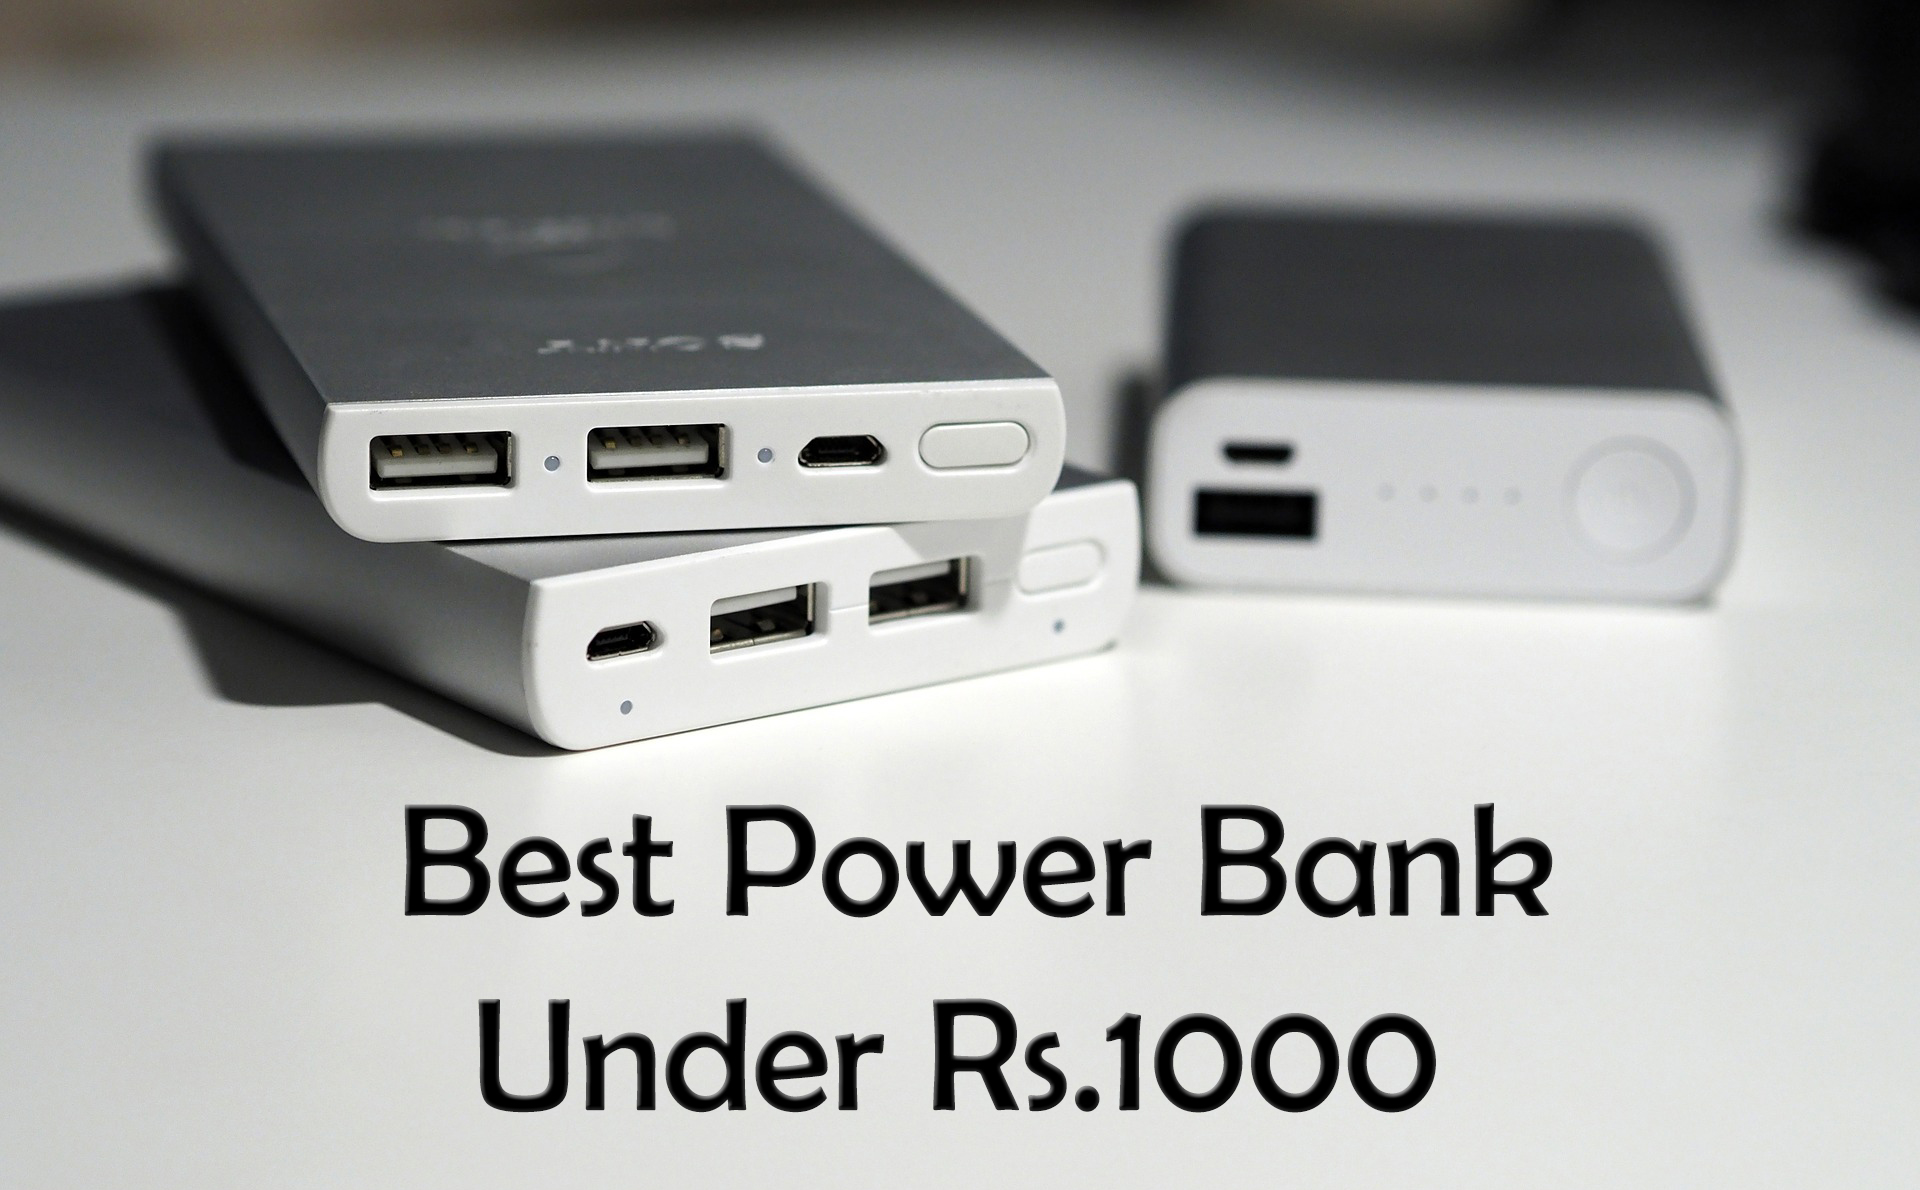 Best Power Bank Under 1000